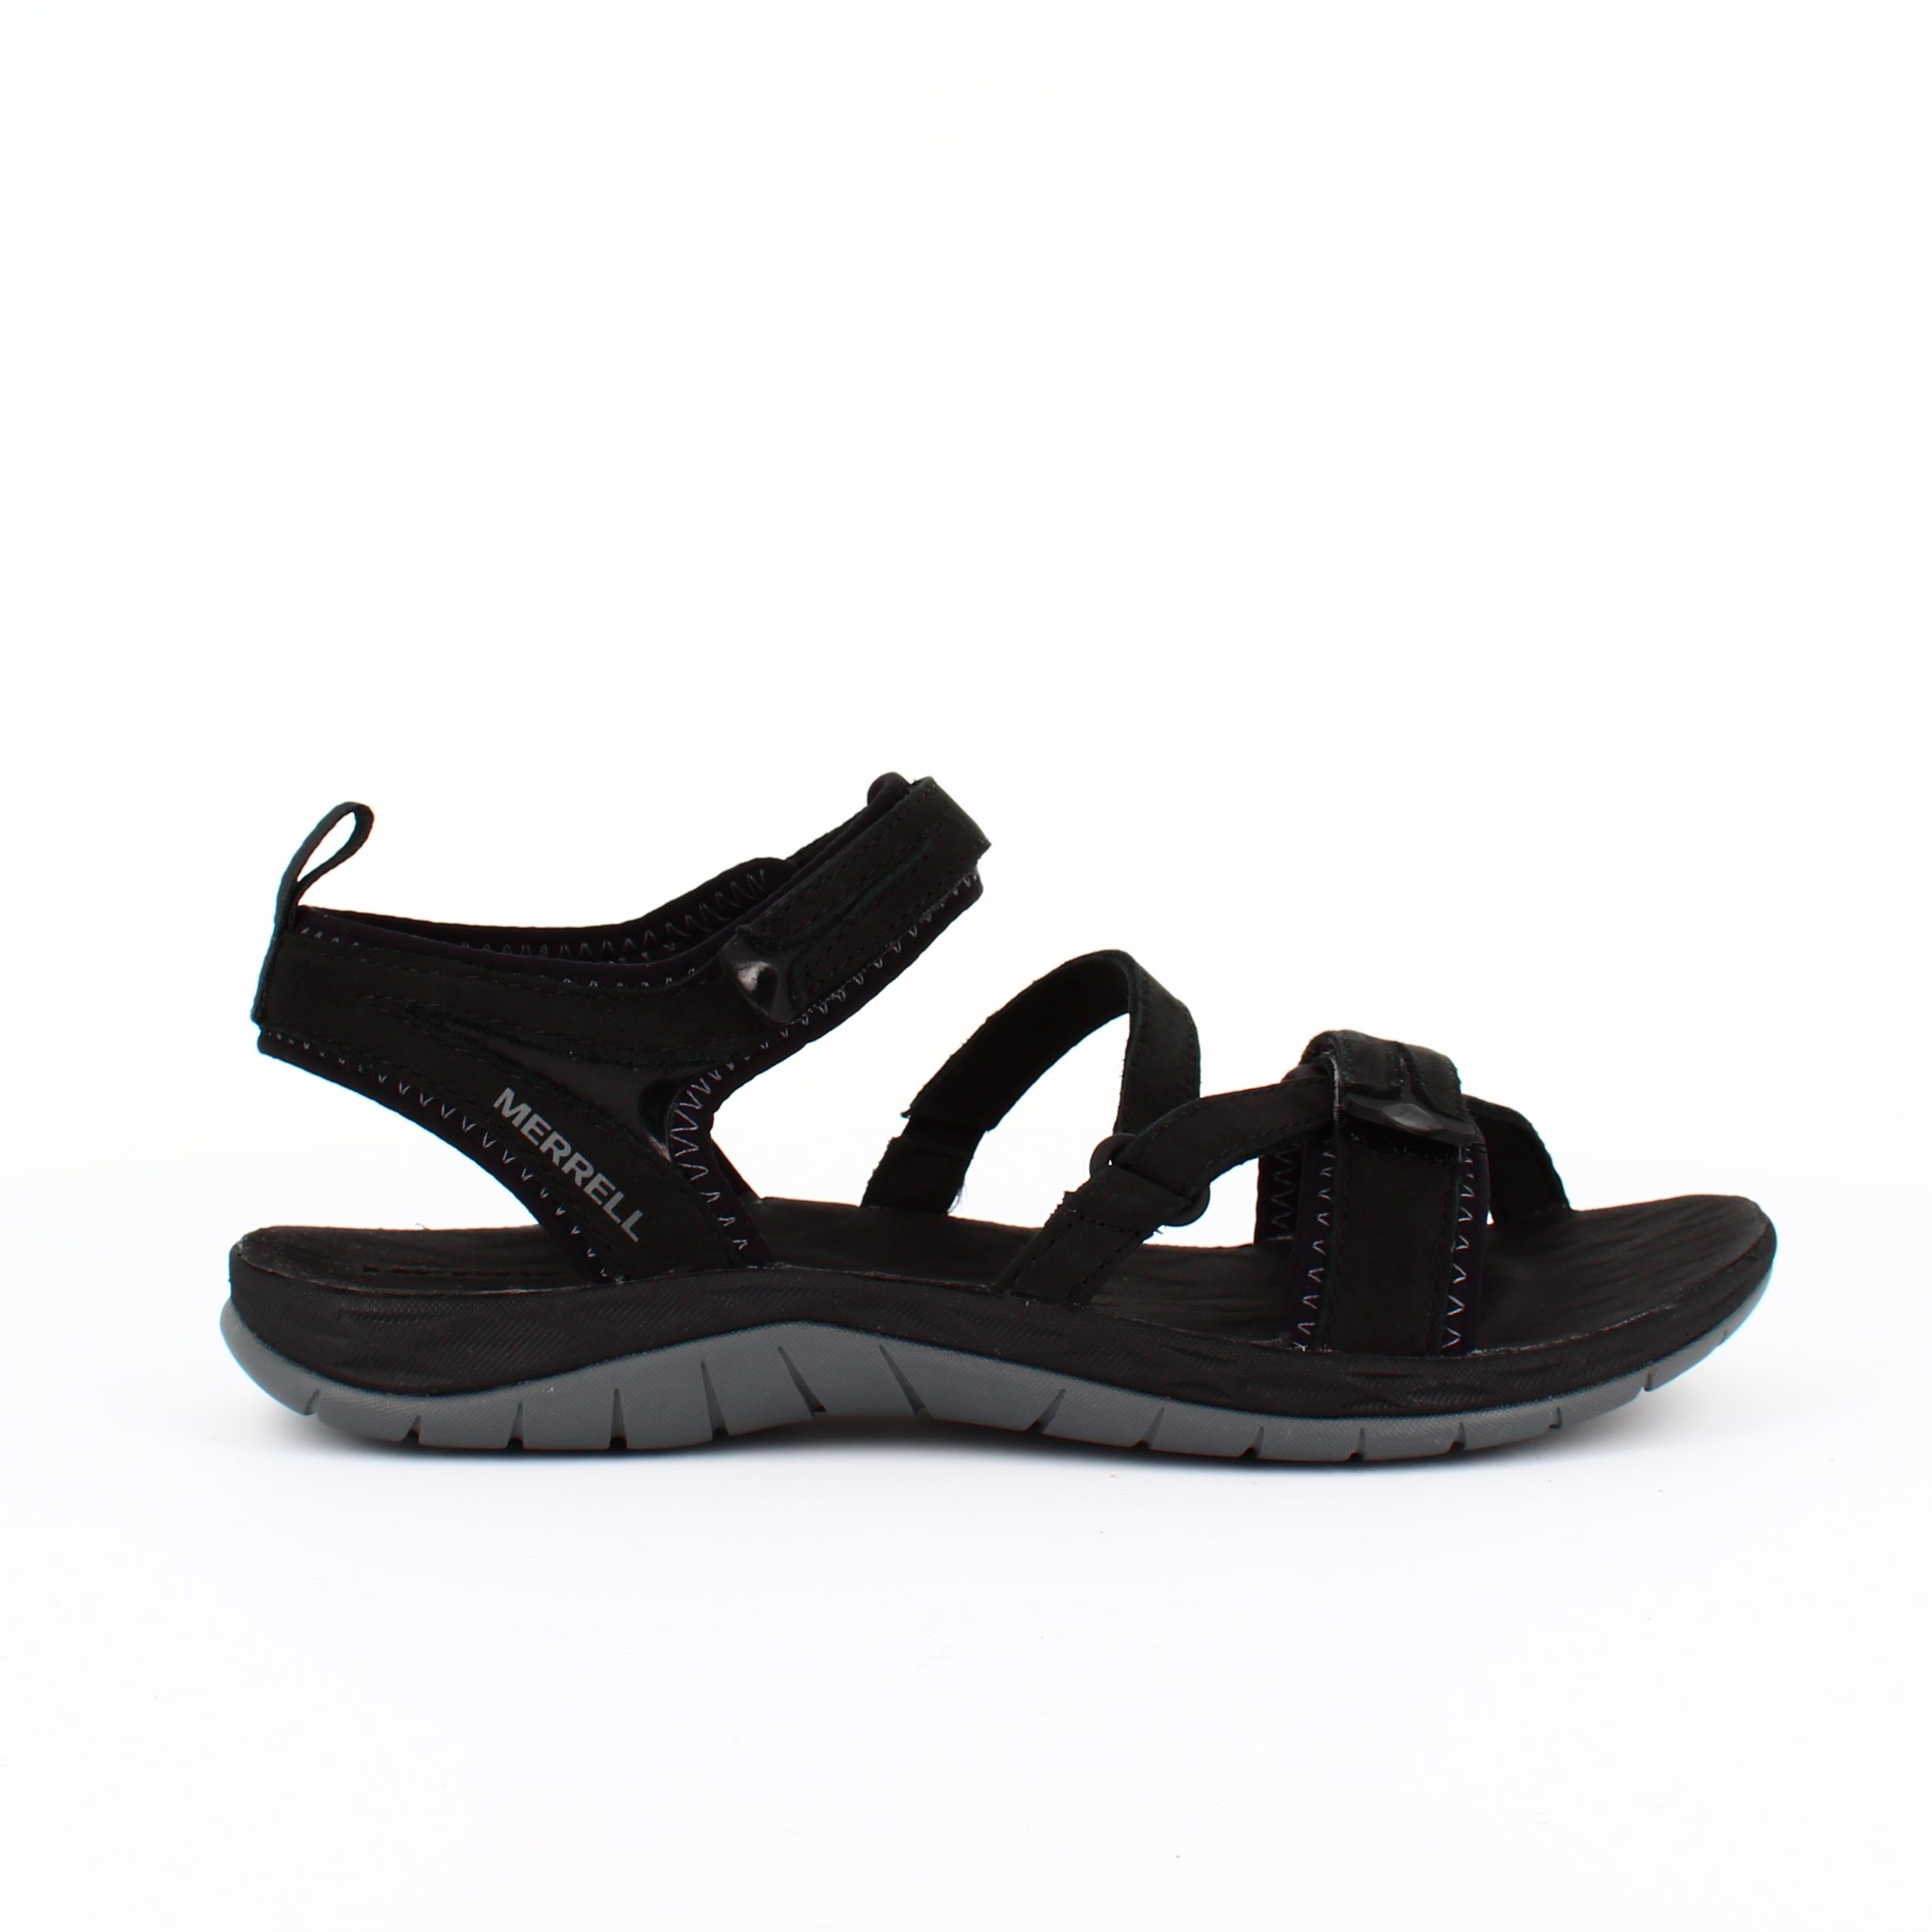 Image of   Sort sporty sandal fra Merrell - 39